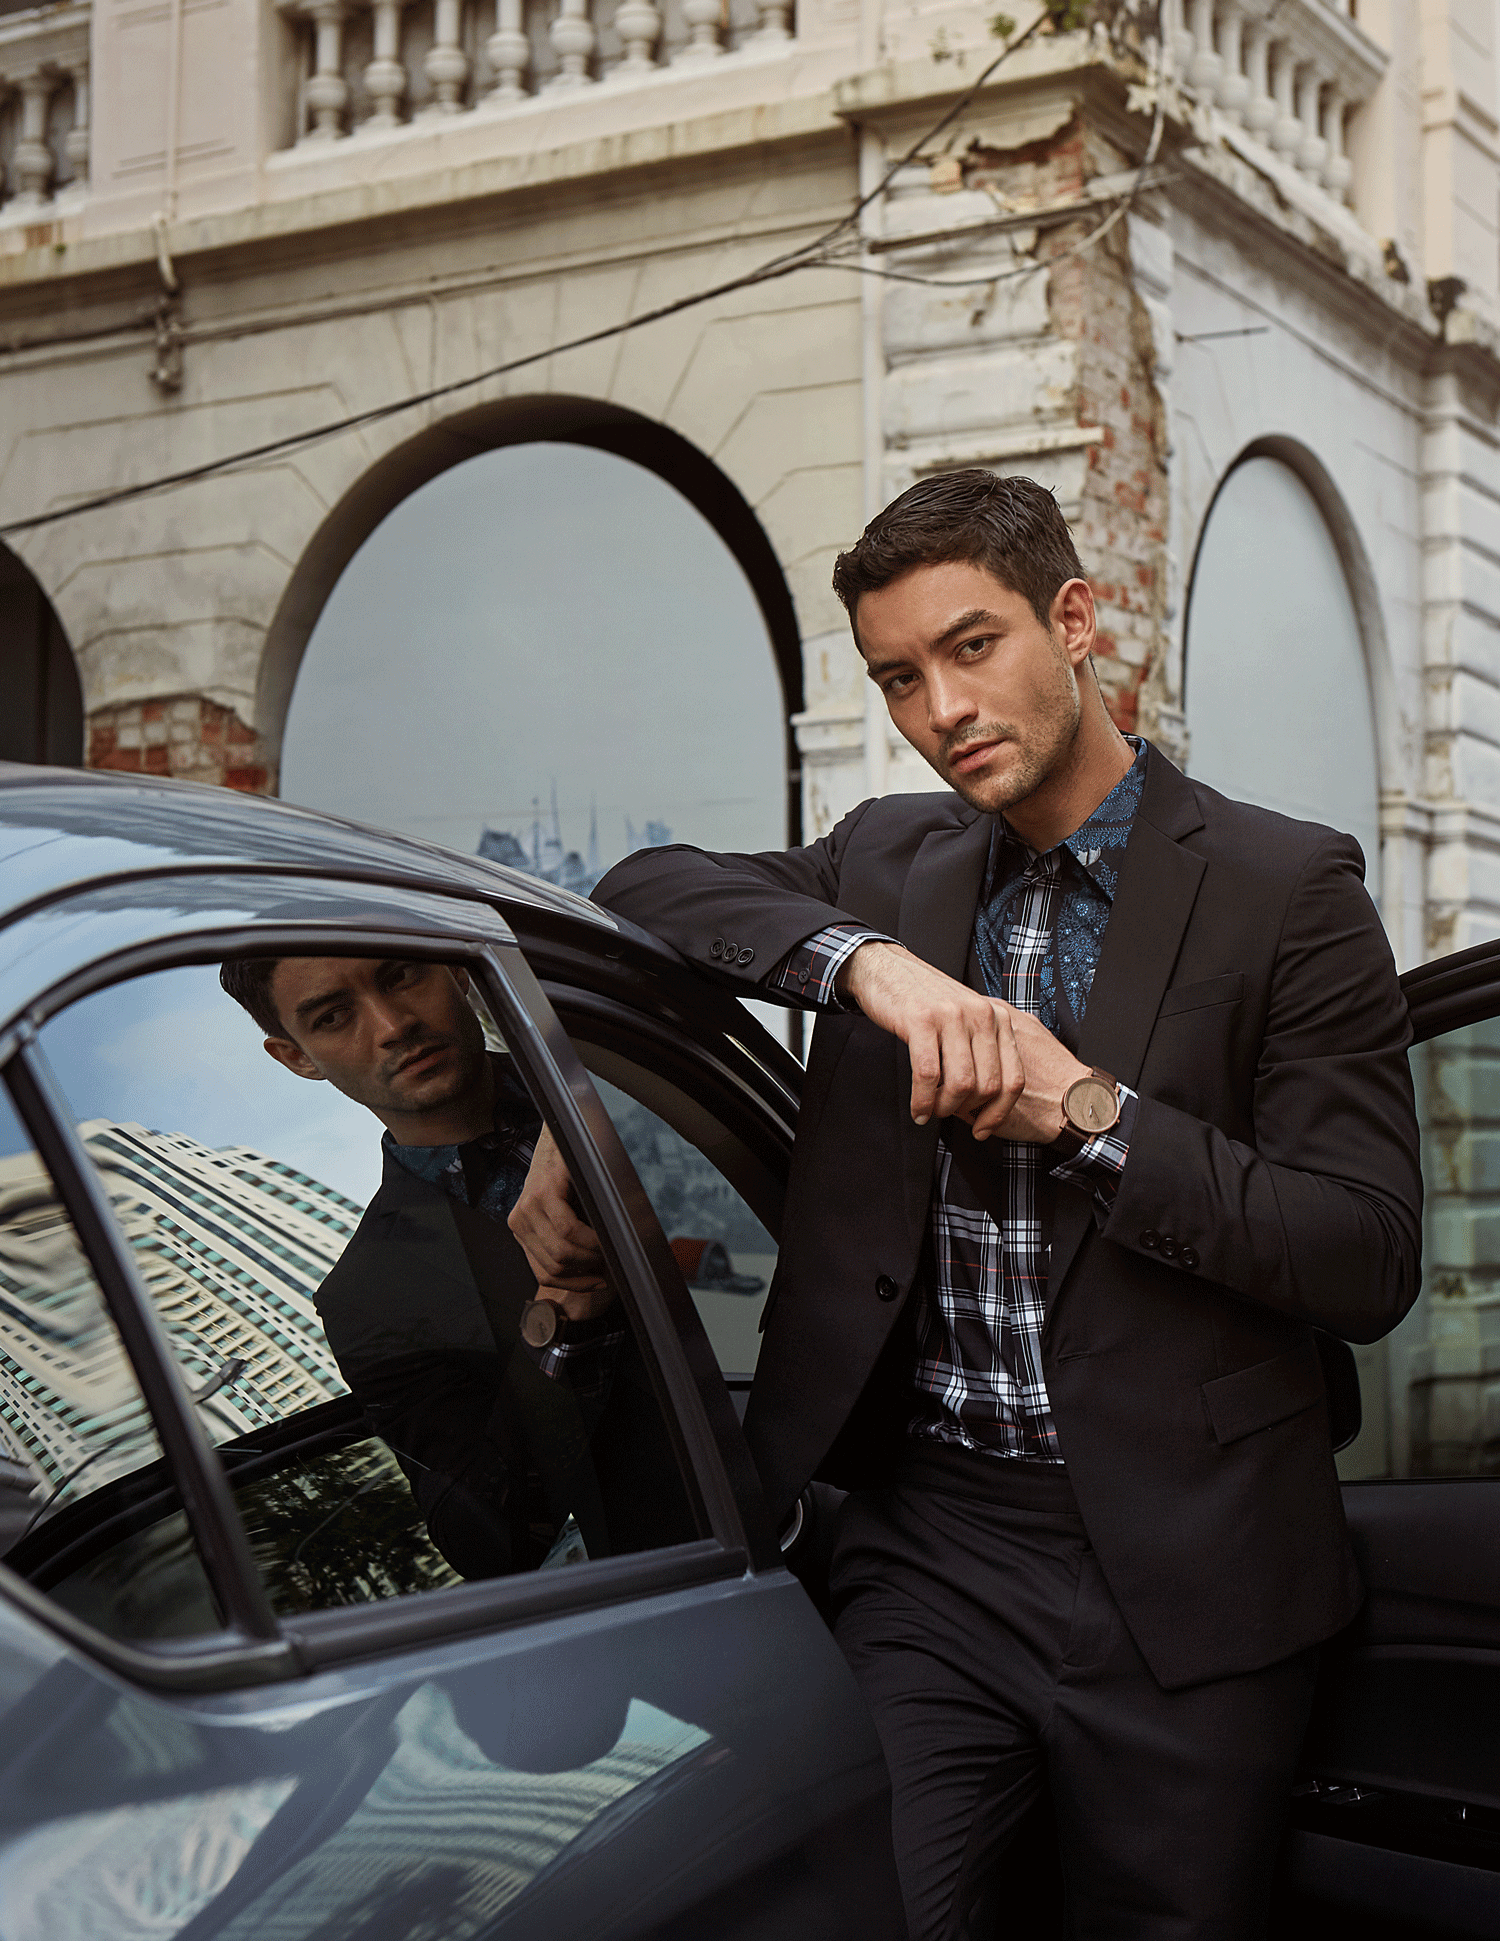 car : Mitsubishi NEW Attrage  suit : SARIT / shirt : GIVENCHY / watch : FORREST